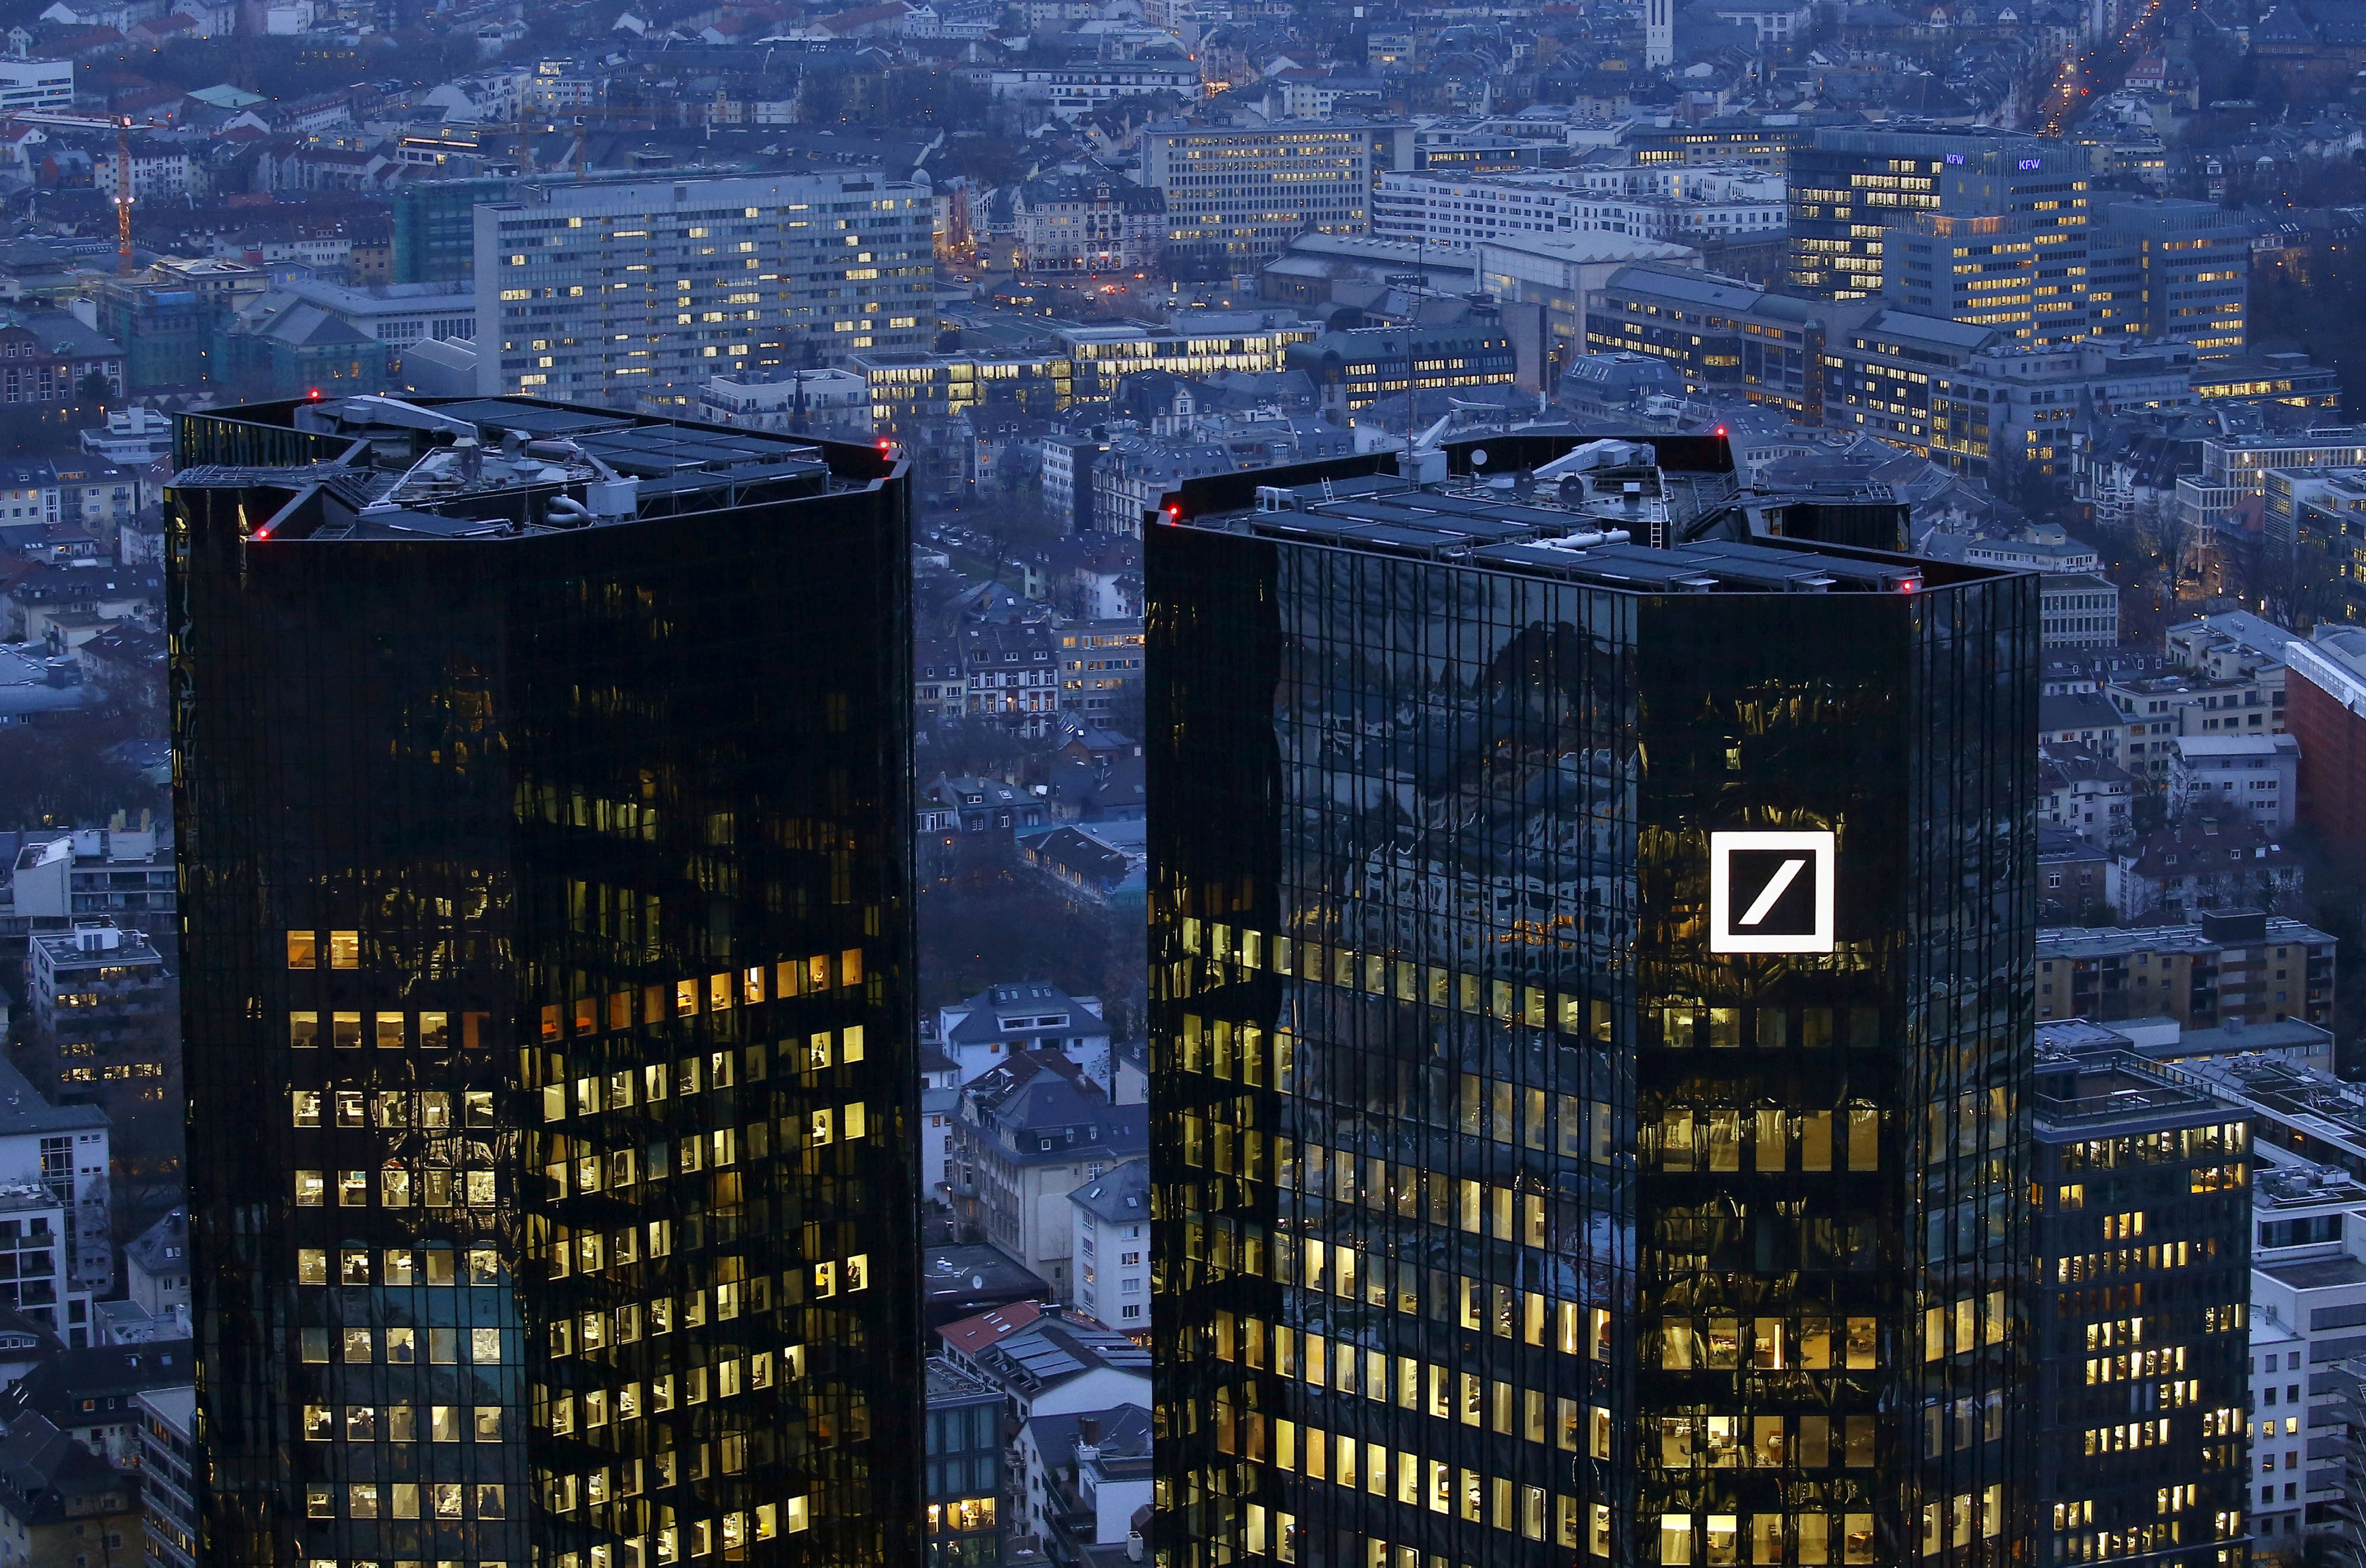 The headquarters of Germany's Deutsche Bank is photographed early evening in Frankfurt, Germany, January 26, 2016.